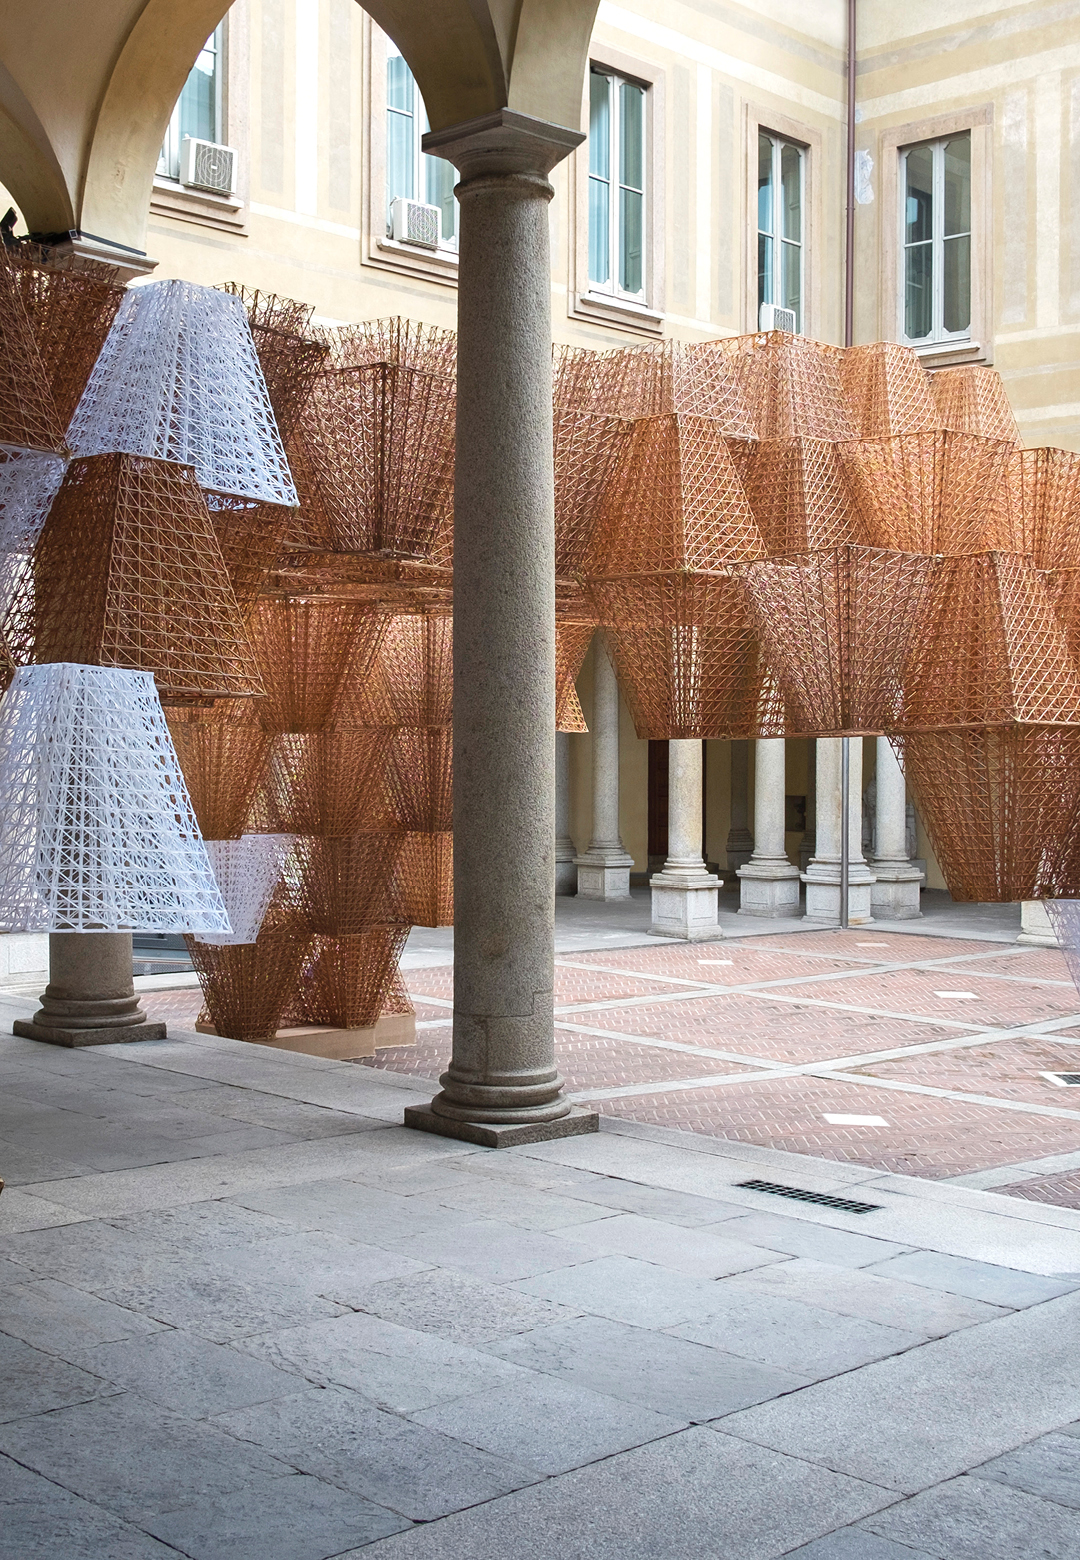 The installation Conifera at Palazzo Isimbardi| COS|Mamou Mani| Conifera| Salone del Mobile| STIR